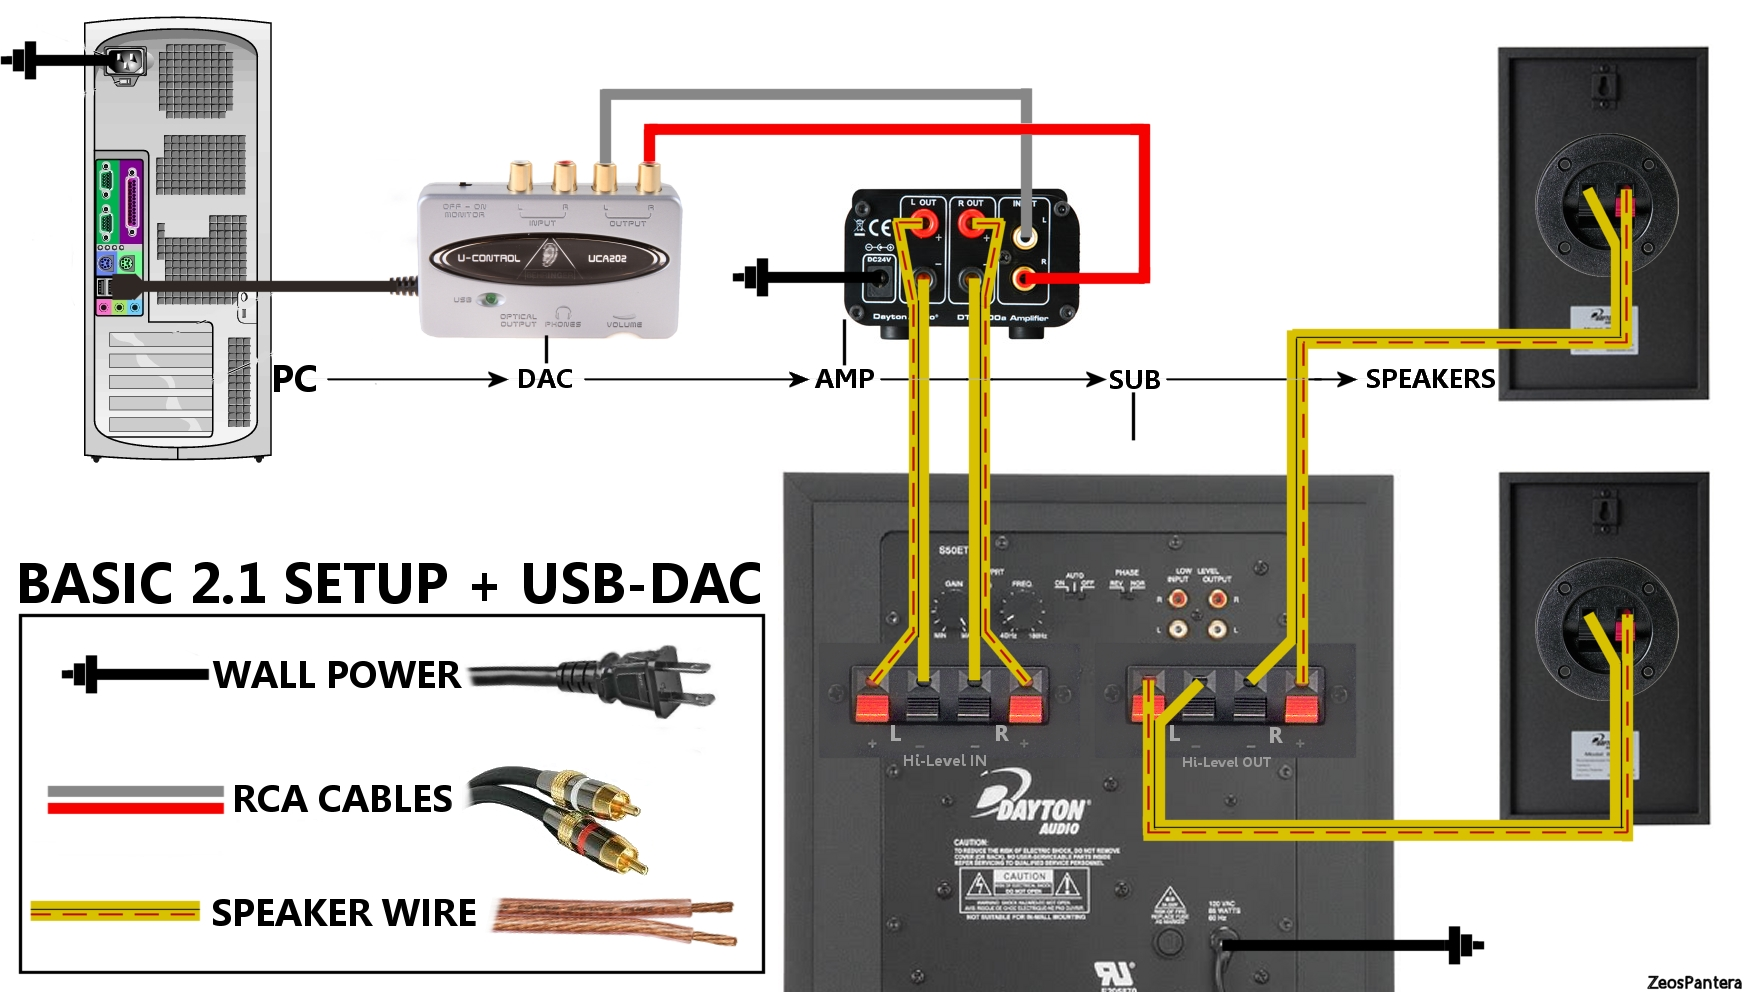 hight resolution of home theater subwoofer wiring diagram 2 1 simple hookup diagram 2 1 sub placement